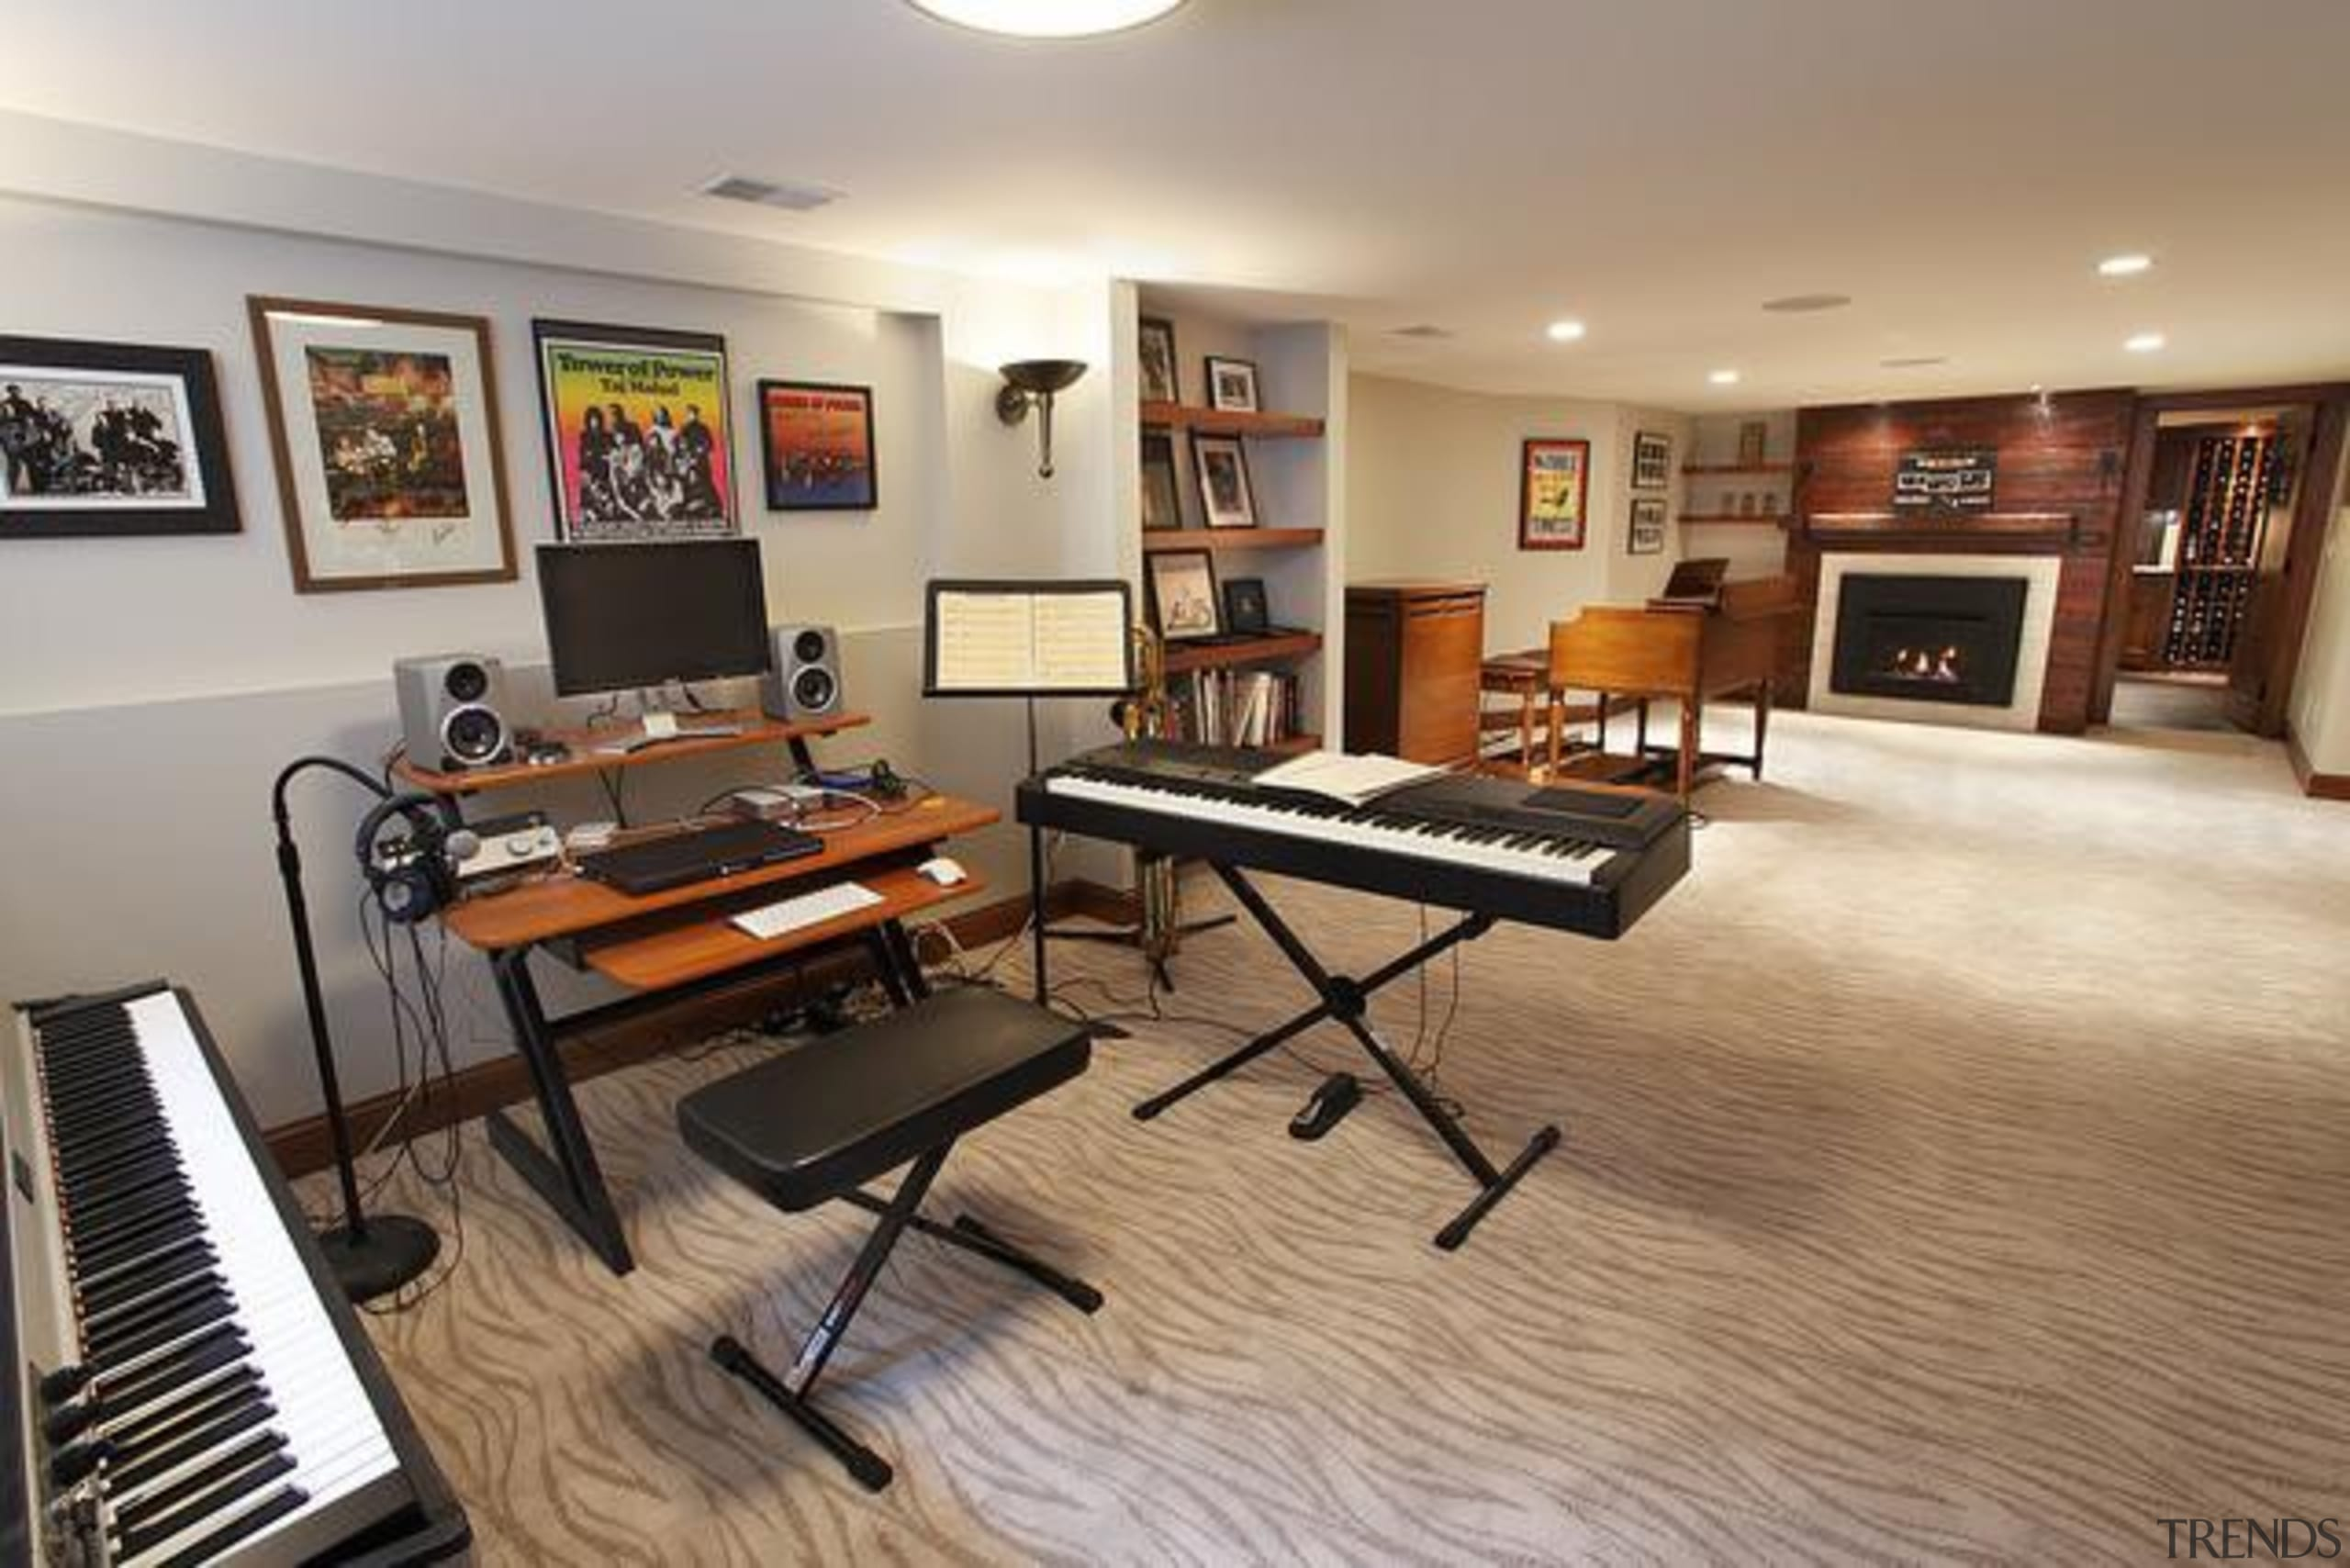 Because of its expansive and wide-open layout, a floor, flooring, hardwood, interior design, keyboard, living room, musical instrument, piano, real estate, room, wood flooring, gray, brown